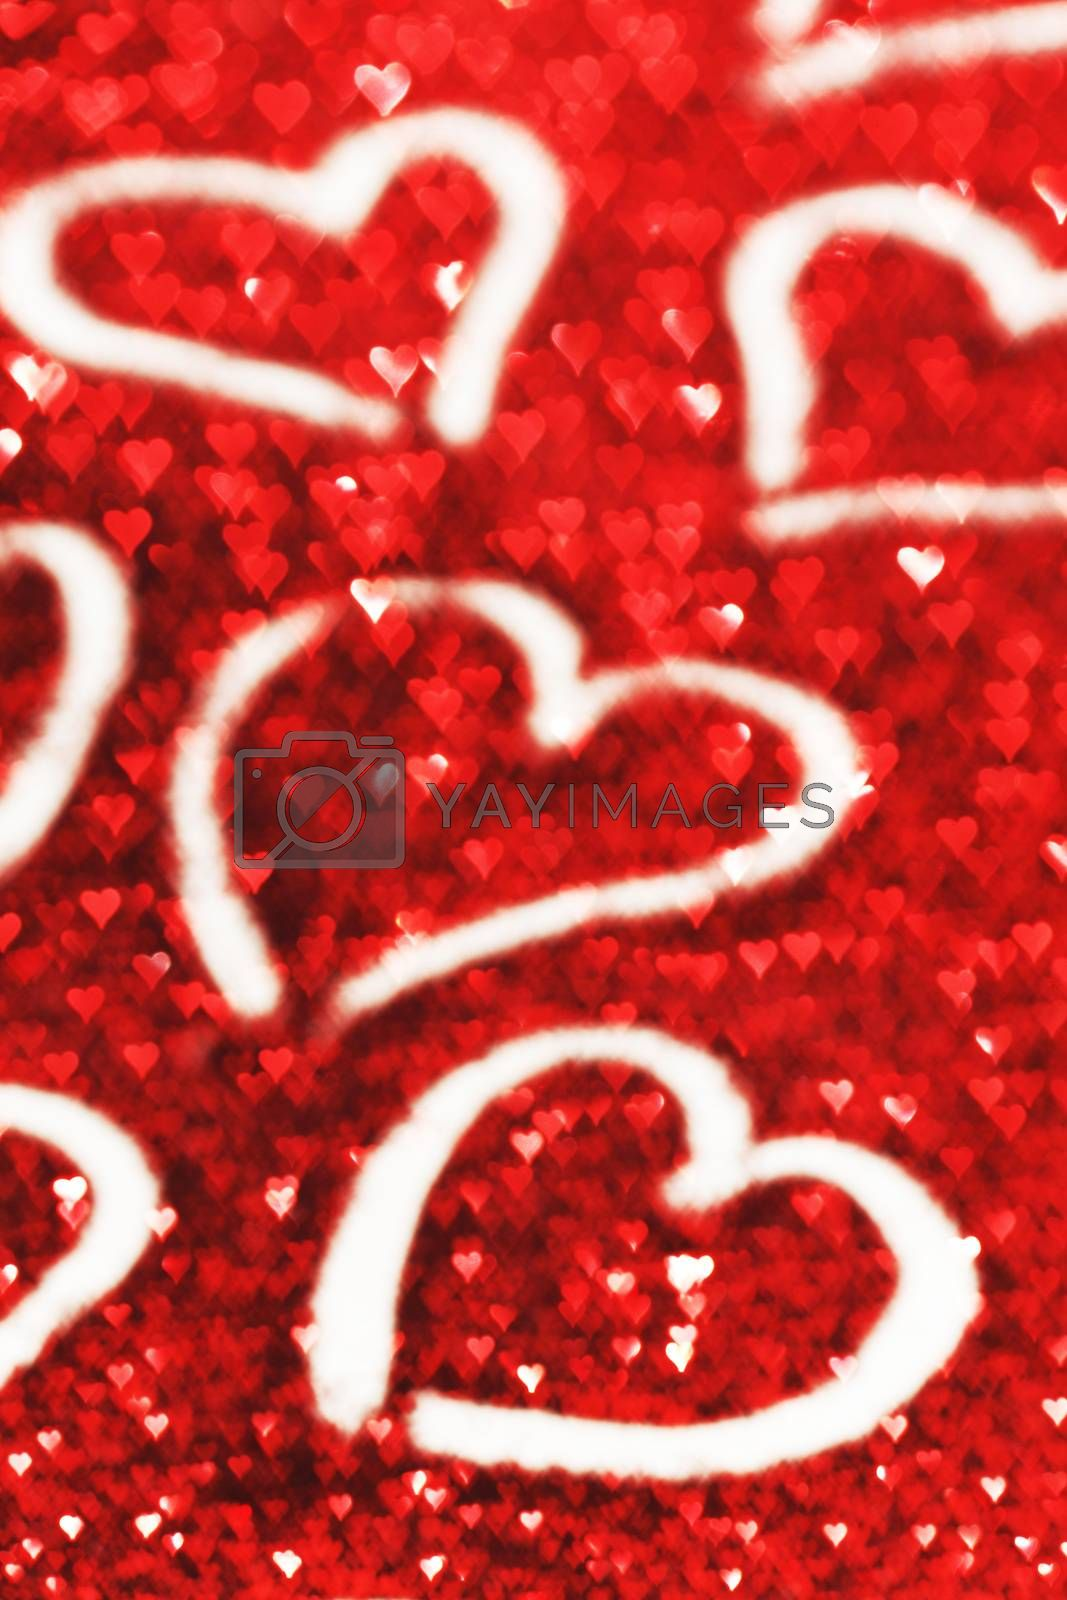 Happy Valentine's day card with hearts on glitter background